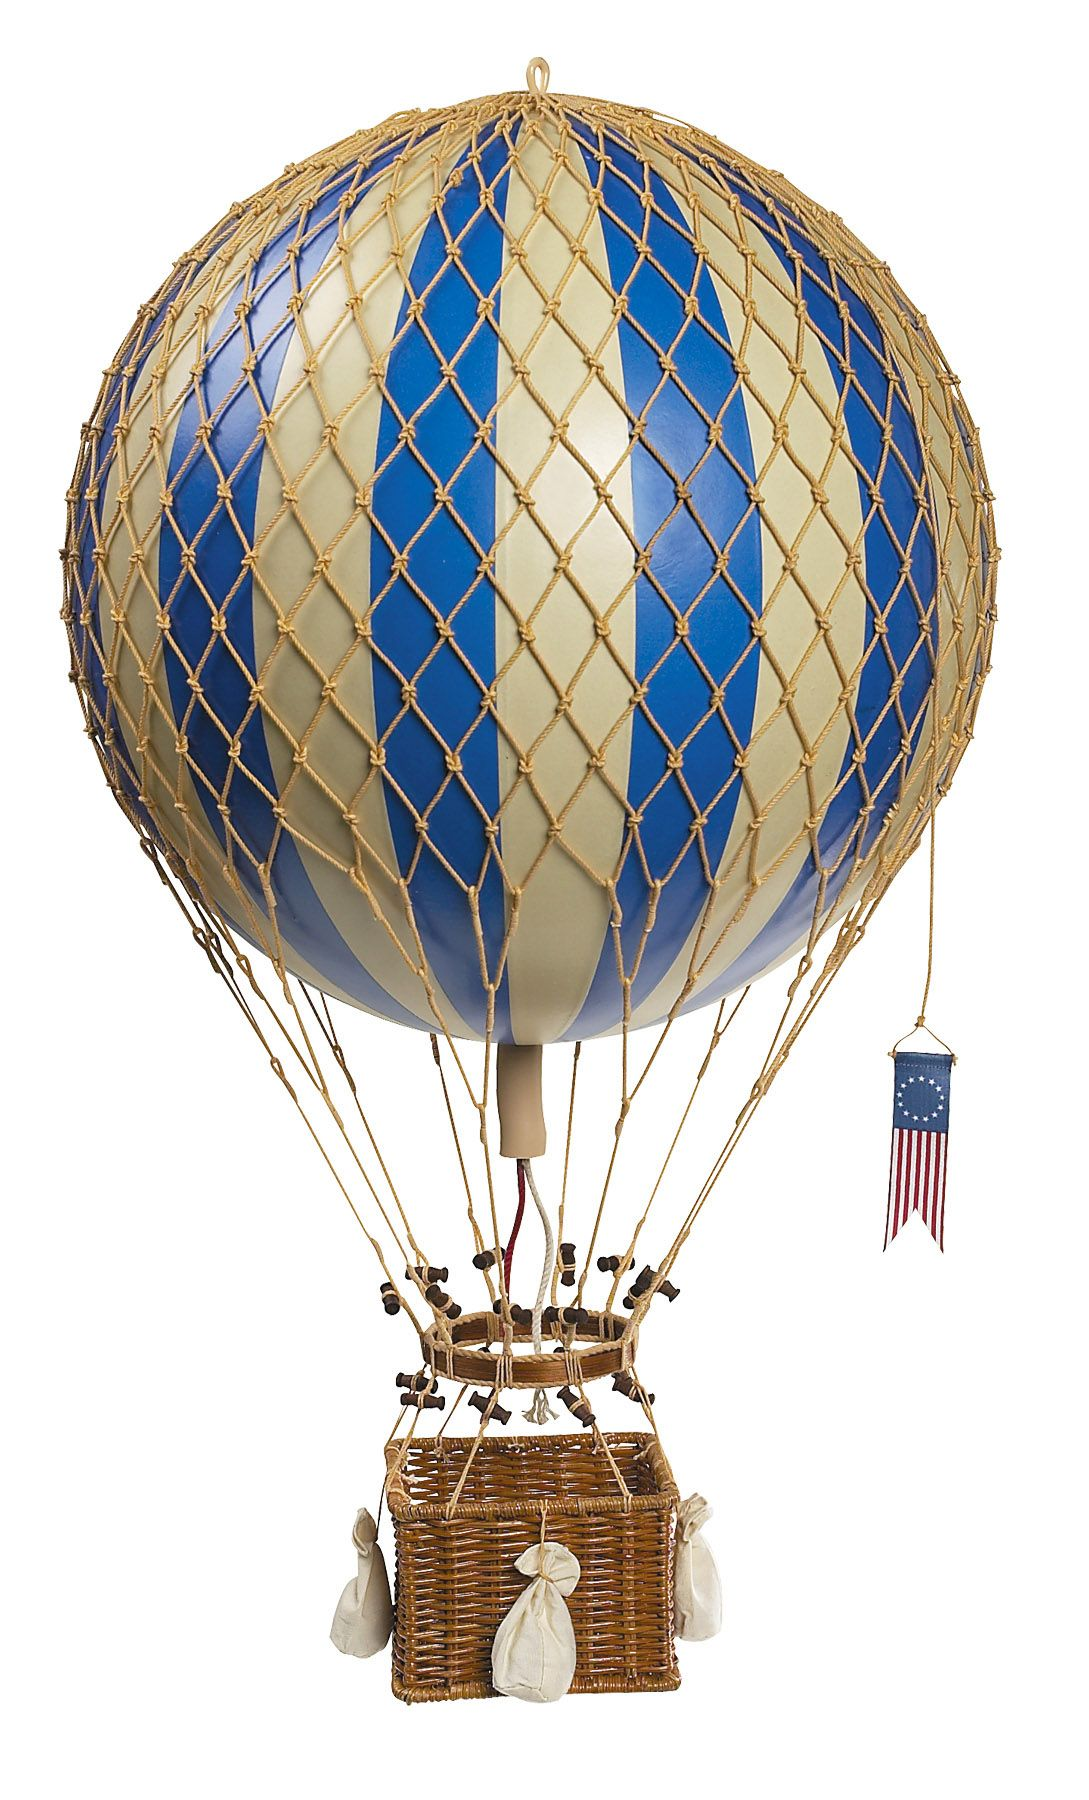 Hot Air Balloon Vintage Vintage hot air balloon blue | Art ...